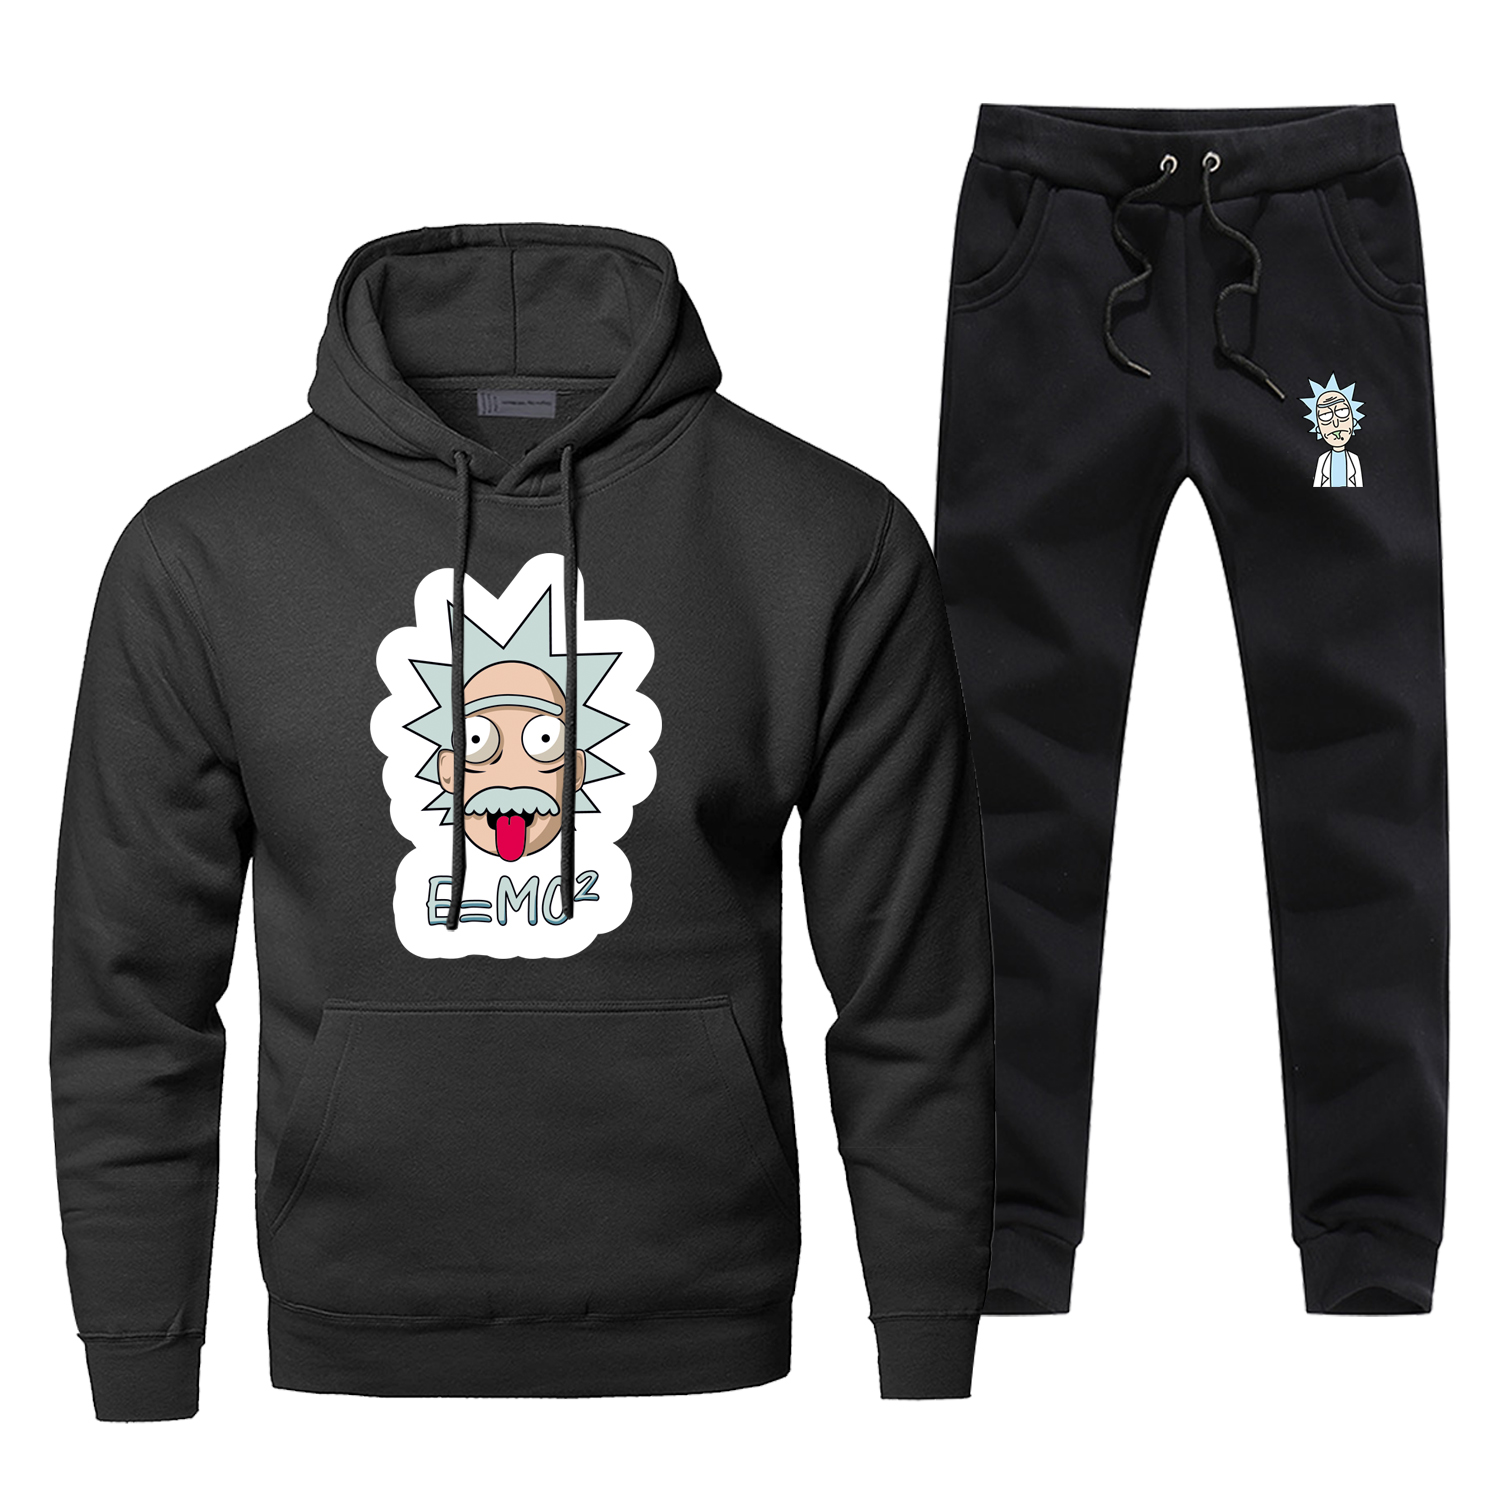 Mens Rick And Morty Hoodies Sets Two Piece Pant Science Hoodie Sweatshirt Sweatpants Streetwear Sportswear Cartoon Sweatshirts